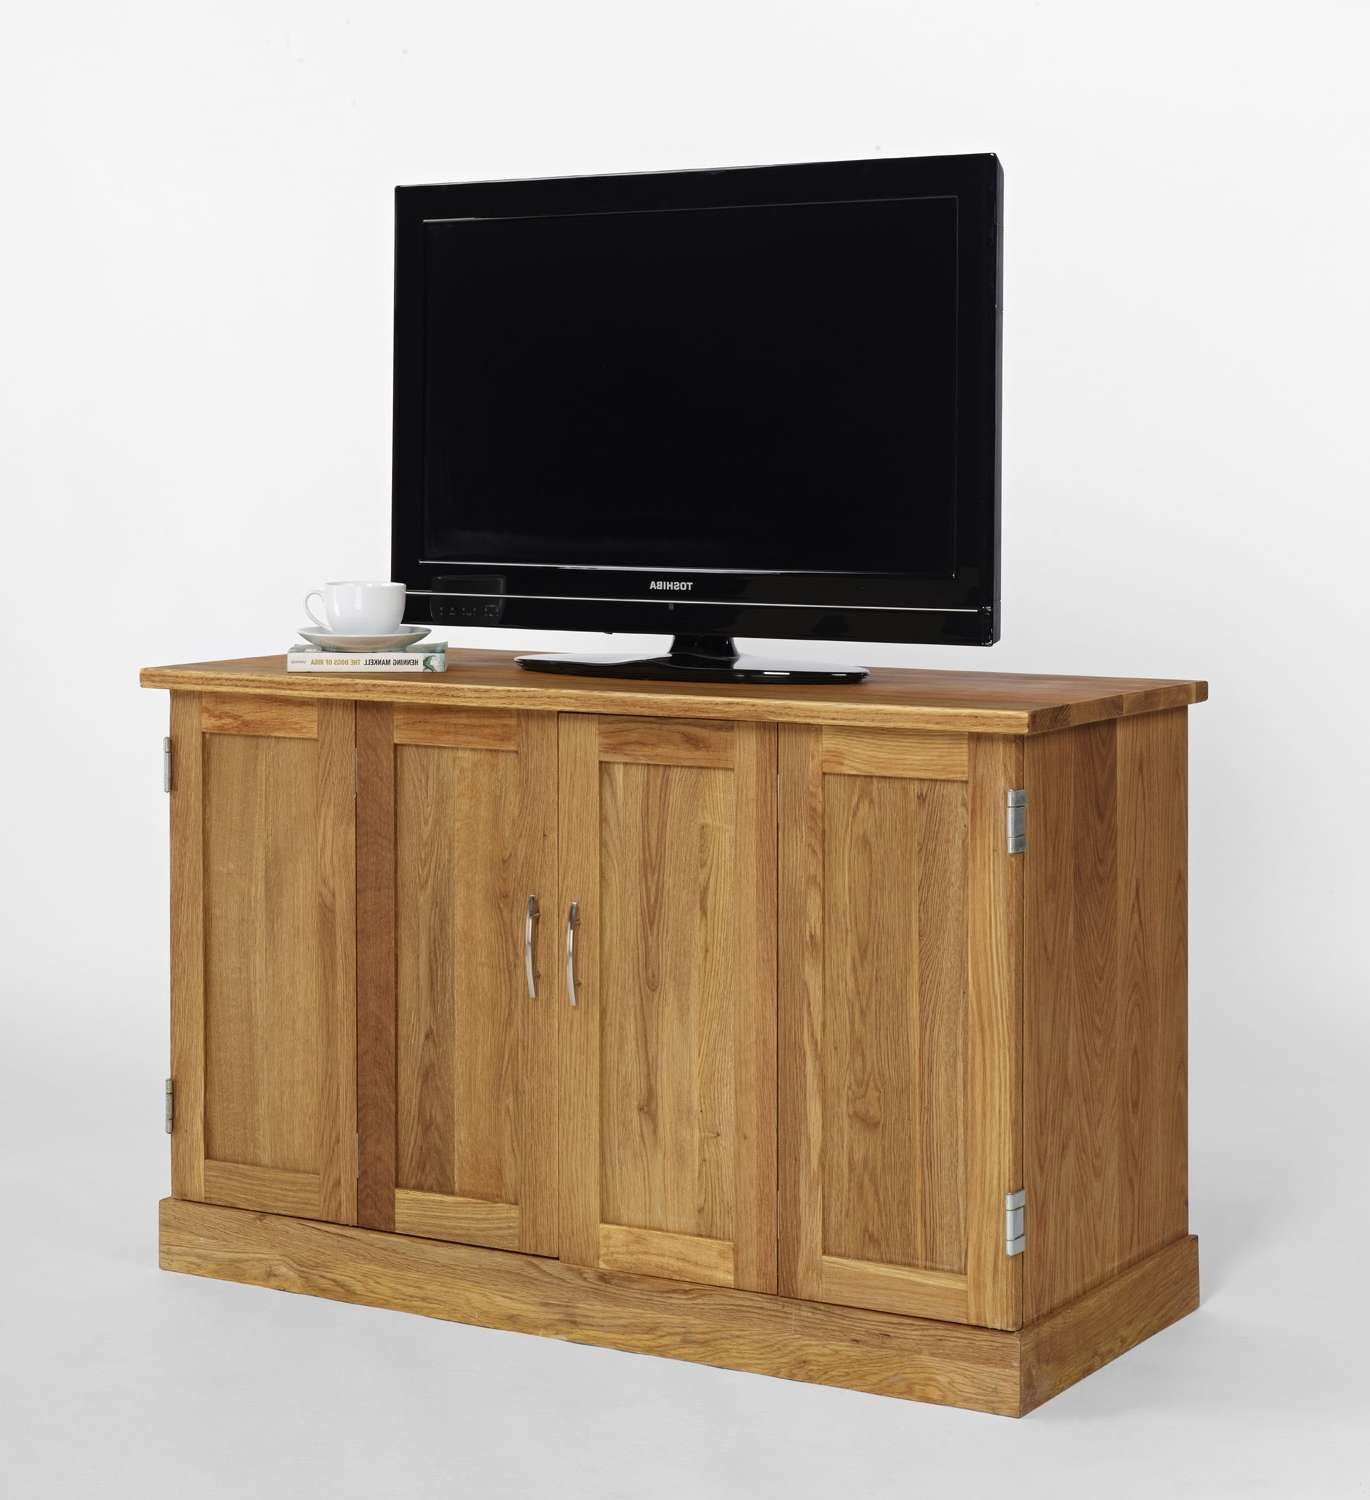 Brooklyn Contemporary Oak Widescreen Tv Cabinet Pertaining To Widescreen Tv Stands (View 2 of 15)